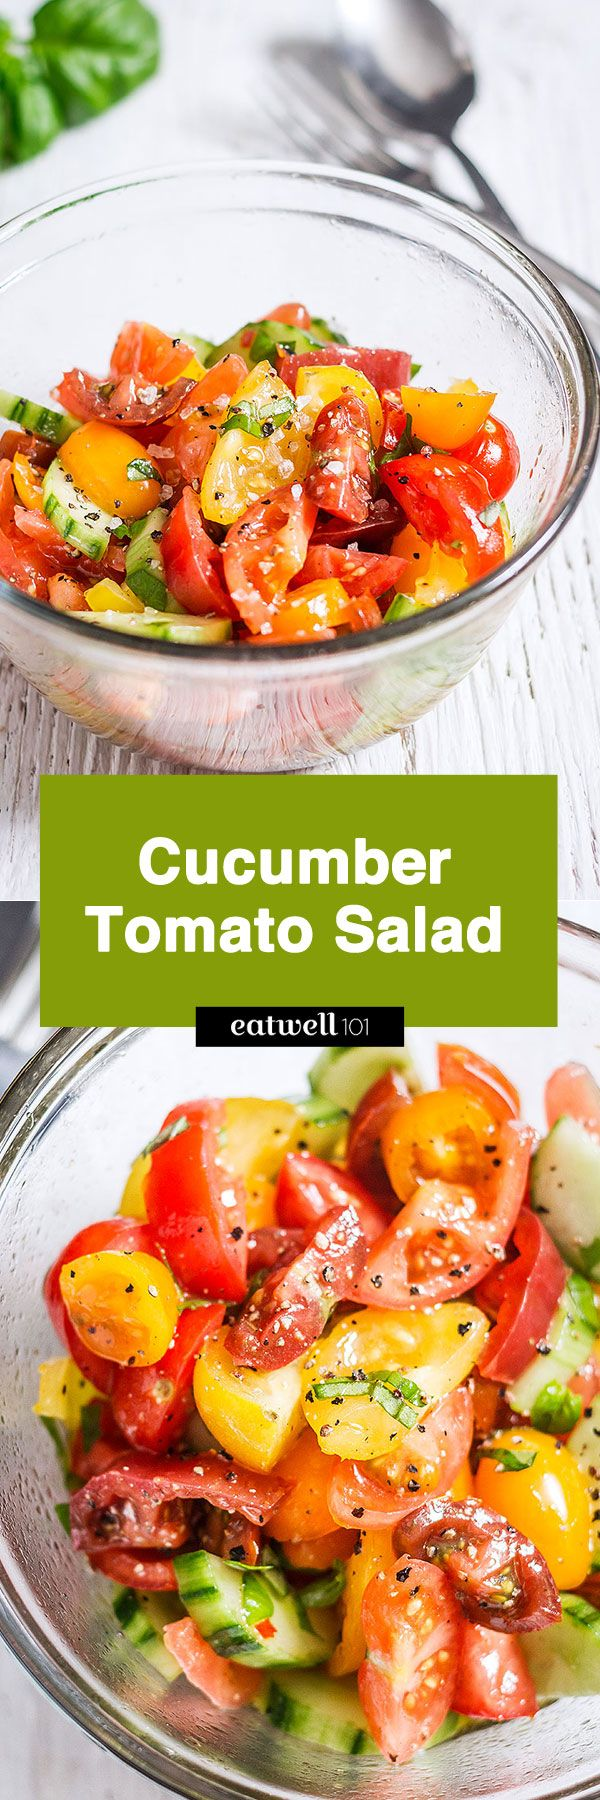 Cucumber salad - With Fresh cucumbers, juicy tomatoes, and basil are drizzled with a balsamic and oil dressin…